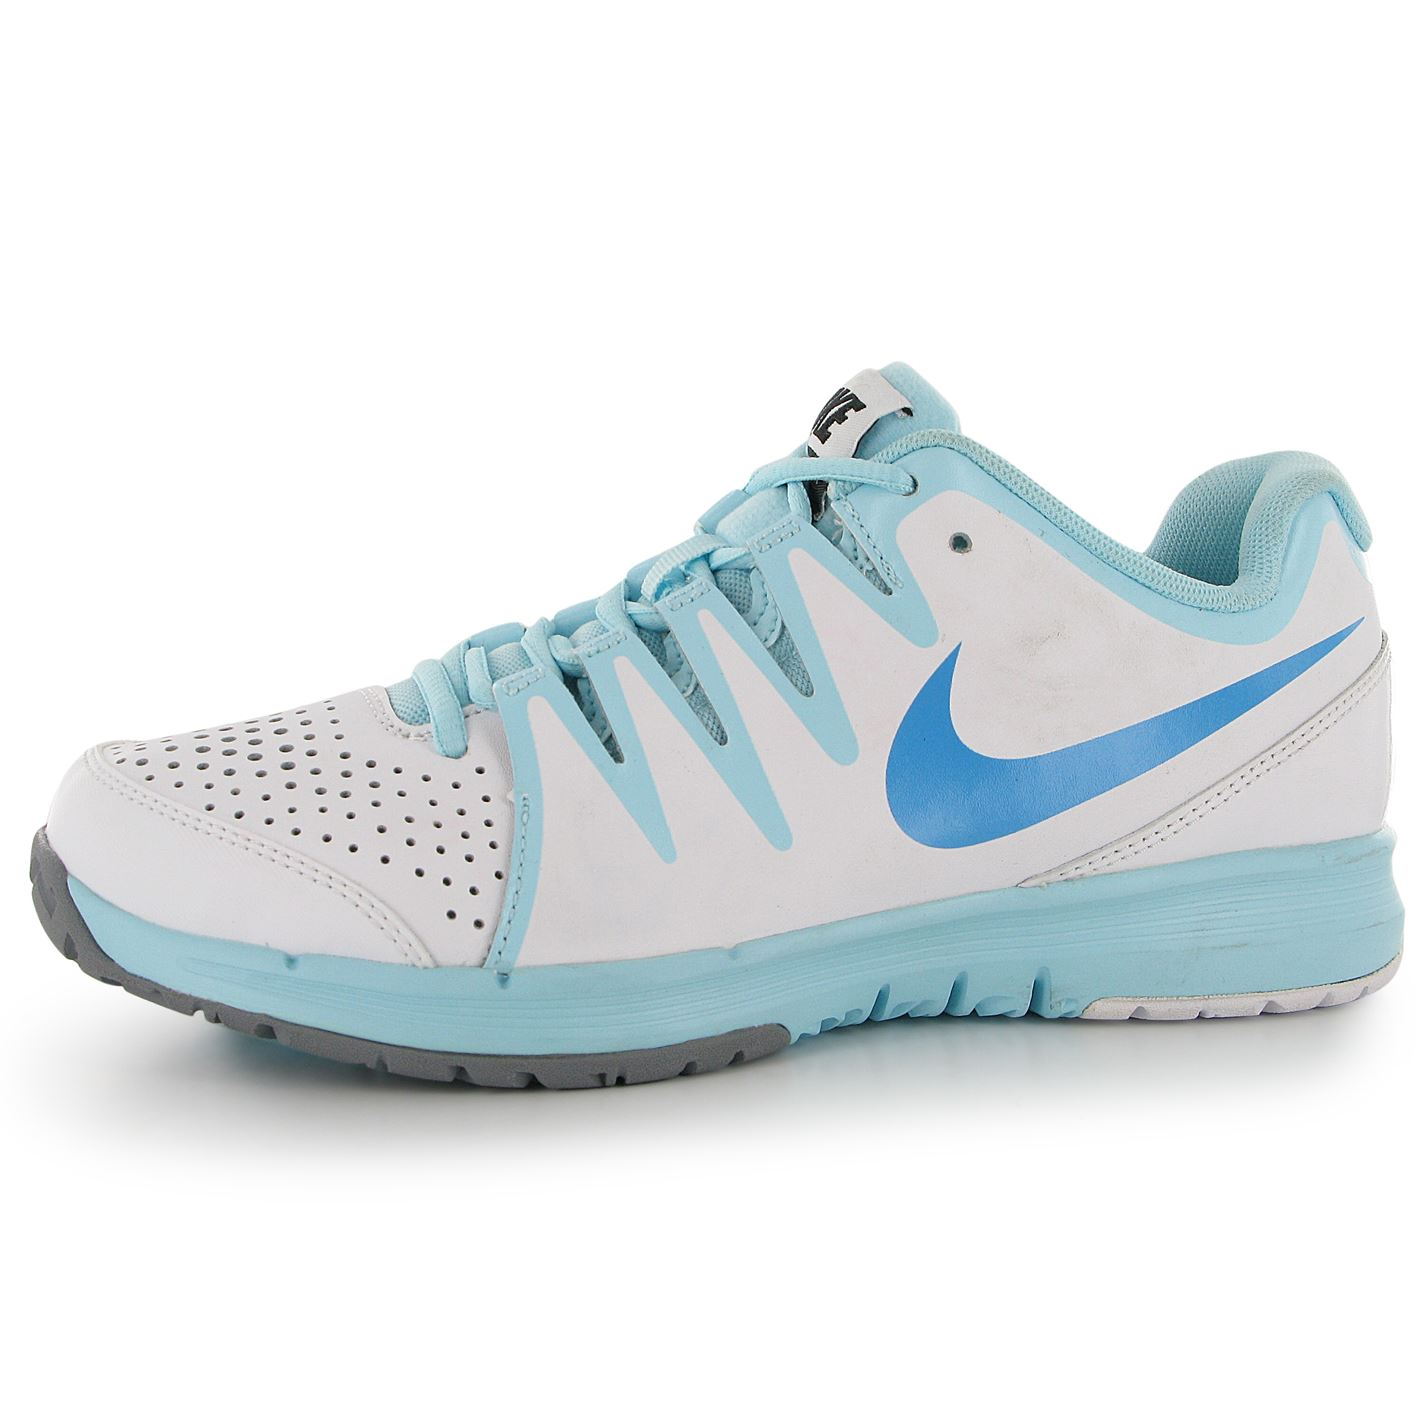 Nike Vapor Court Womens